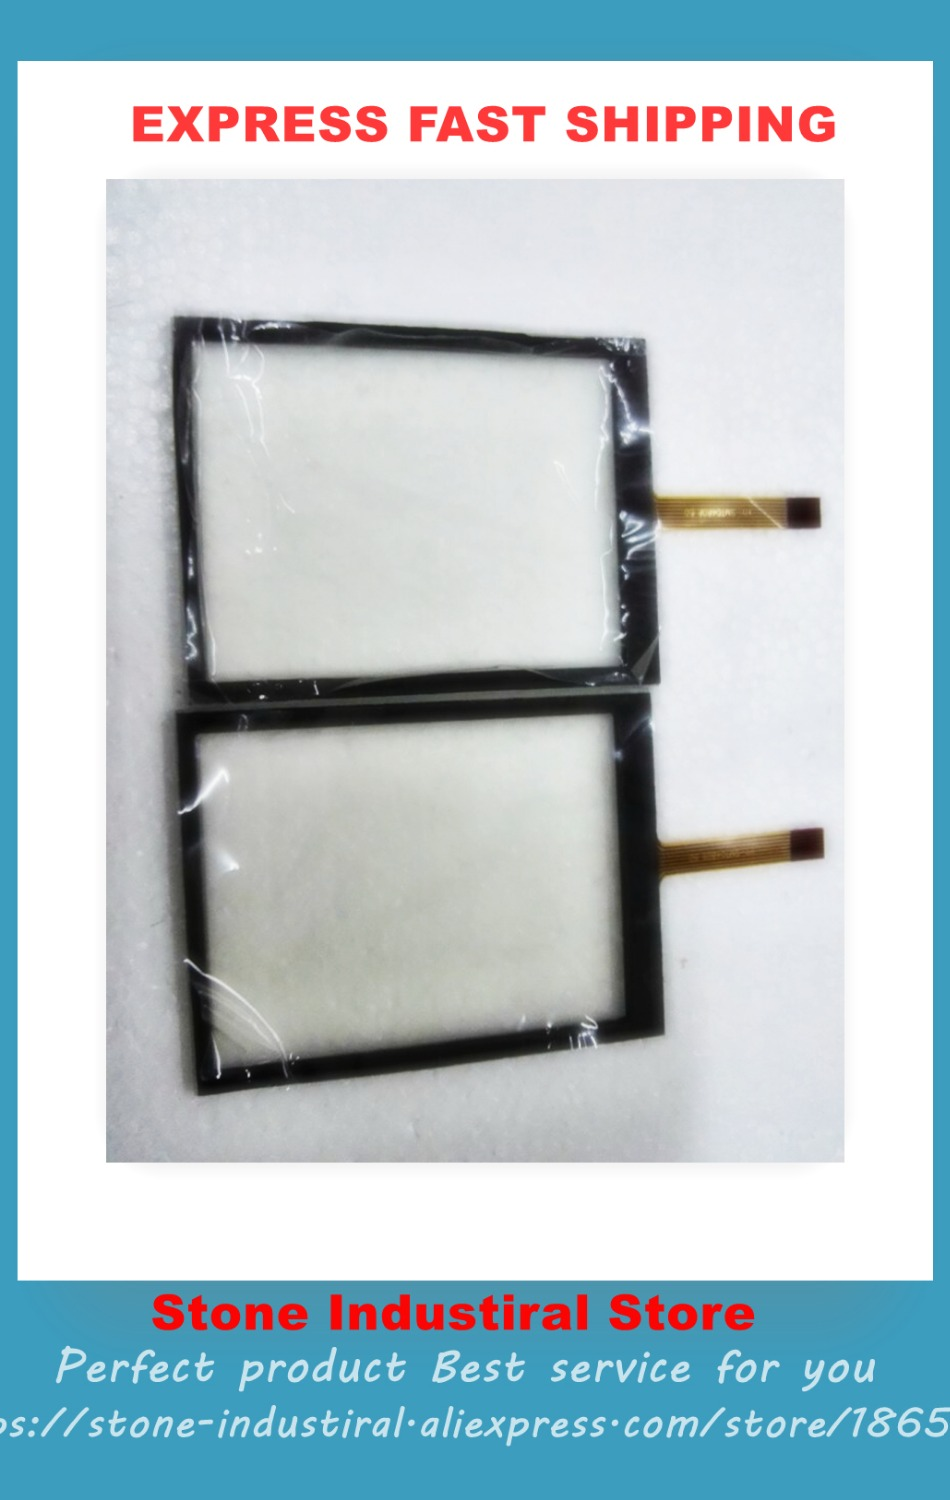 New 47-F-8-48-007 12020396 Touch ScreenNew 47-F-8-48-007 12020396 Touch Screen